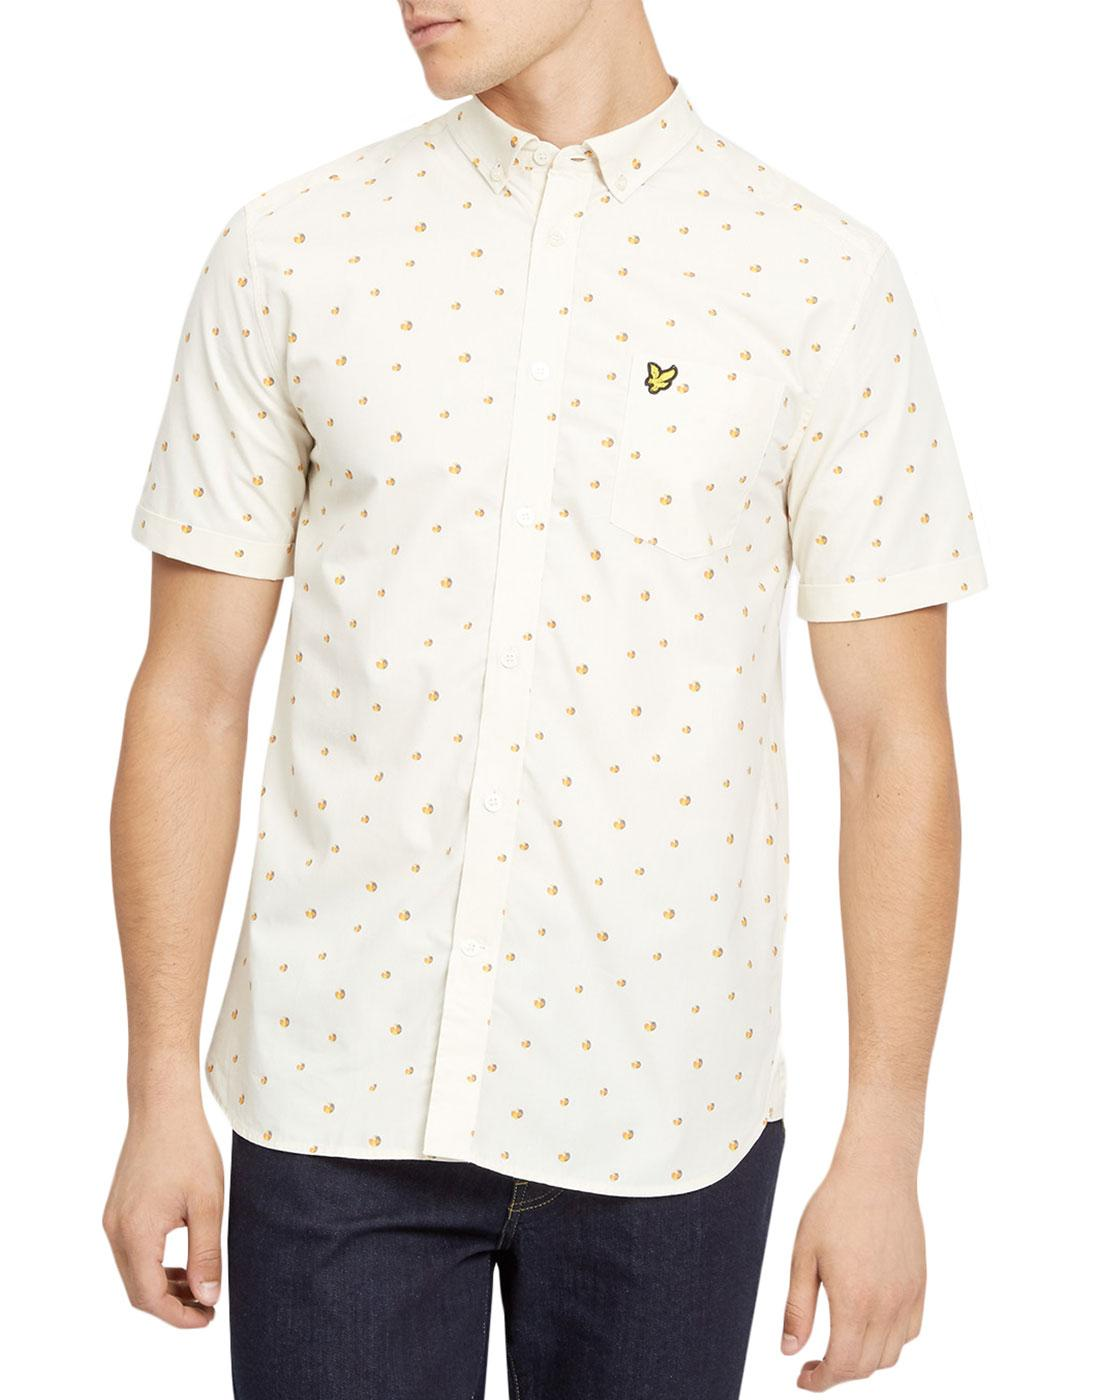 LYLE & SCOTT Retro 70s Geo Beach Ball Print Shirt